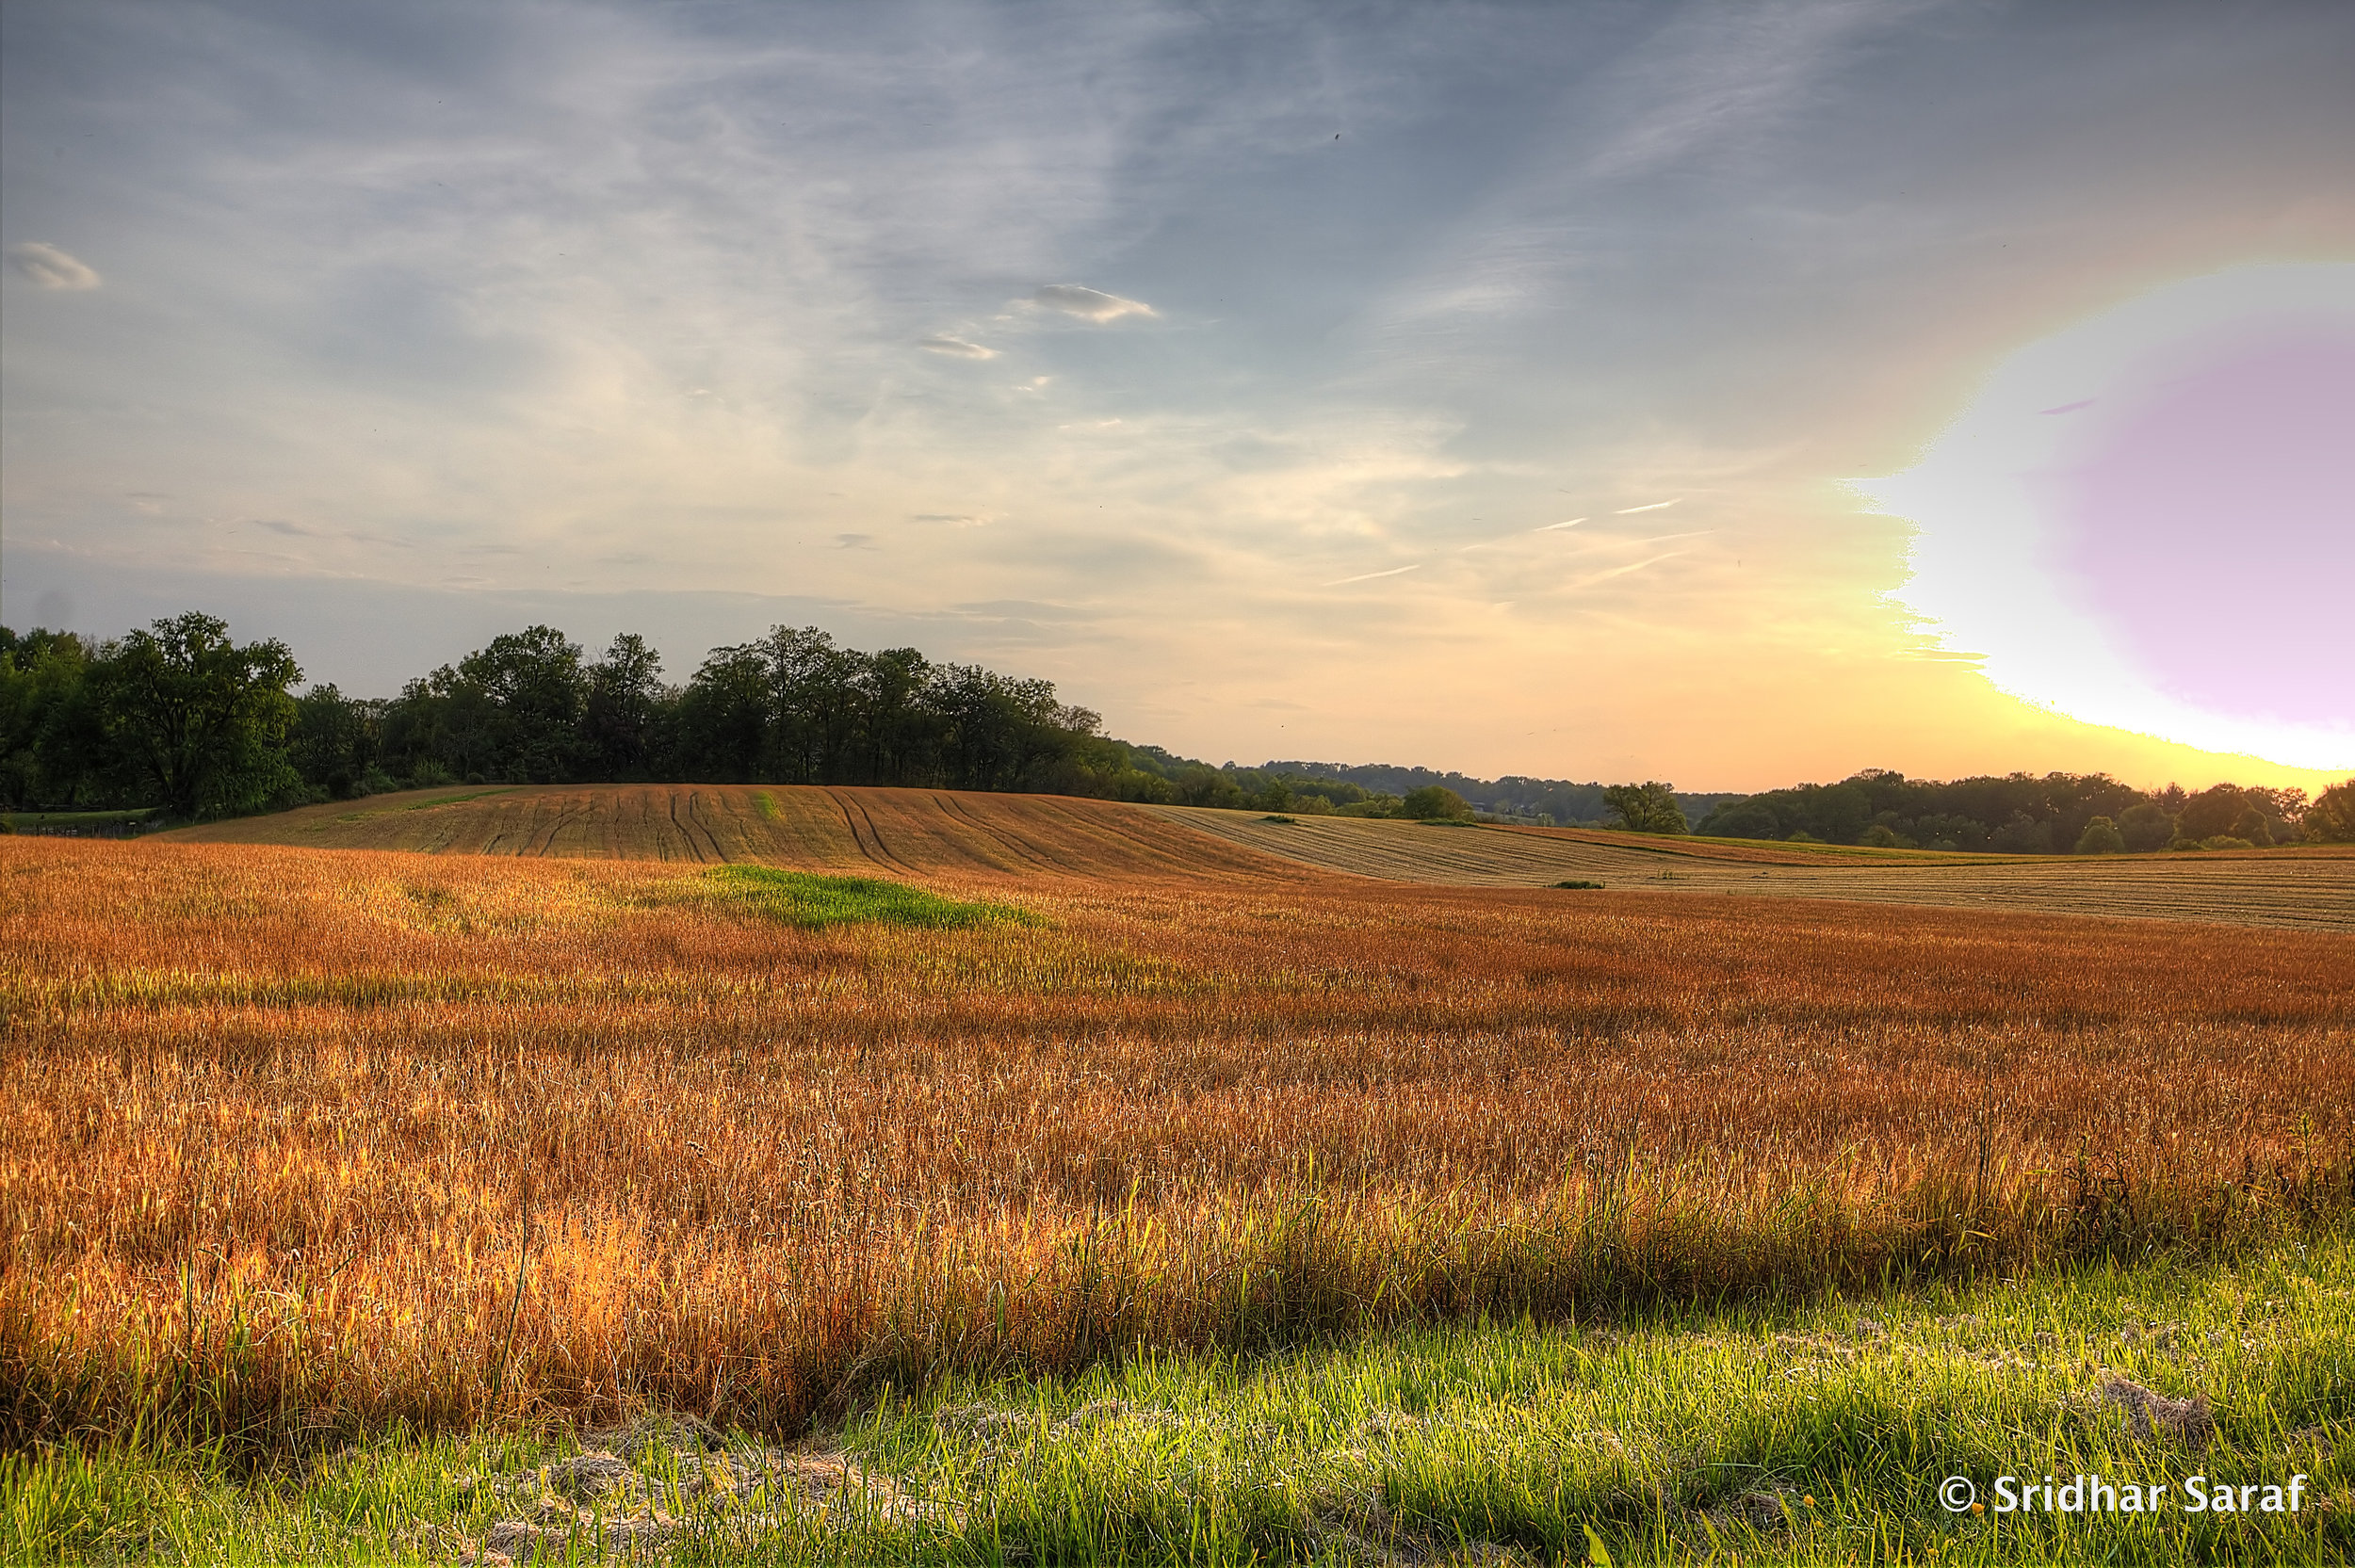 Image by Sridhar Saraf showing Maryland agricultural field.